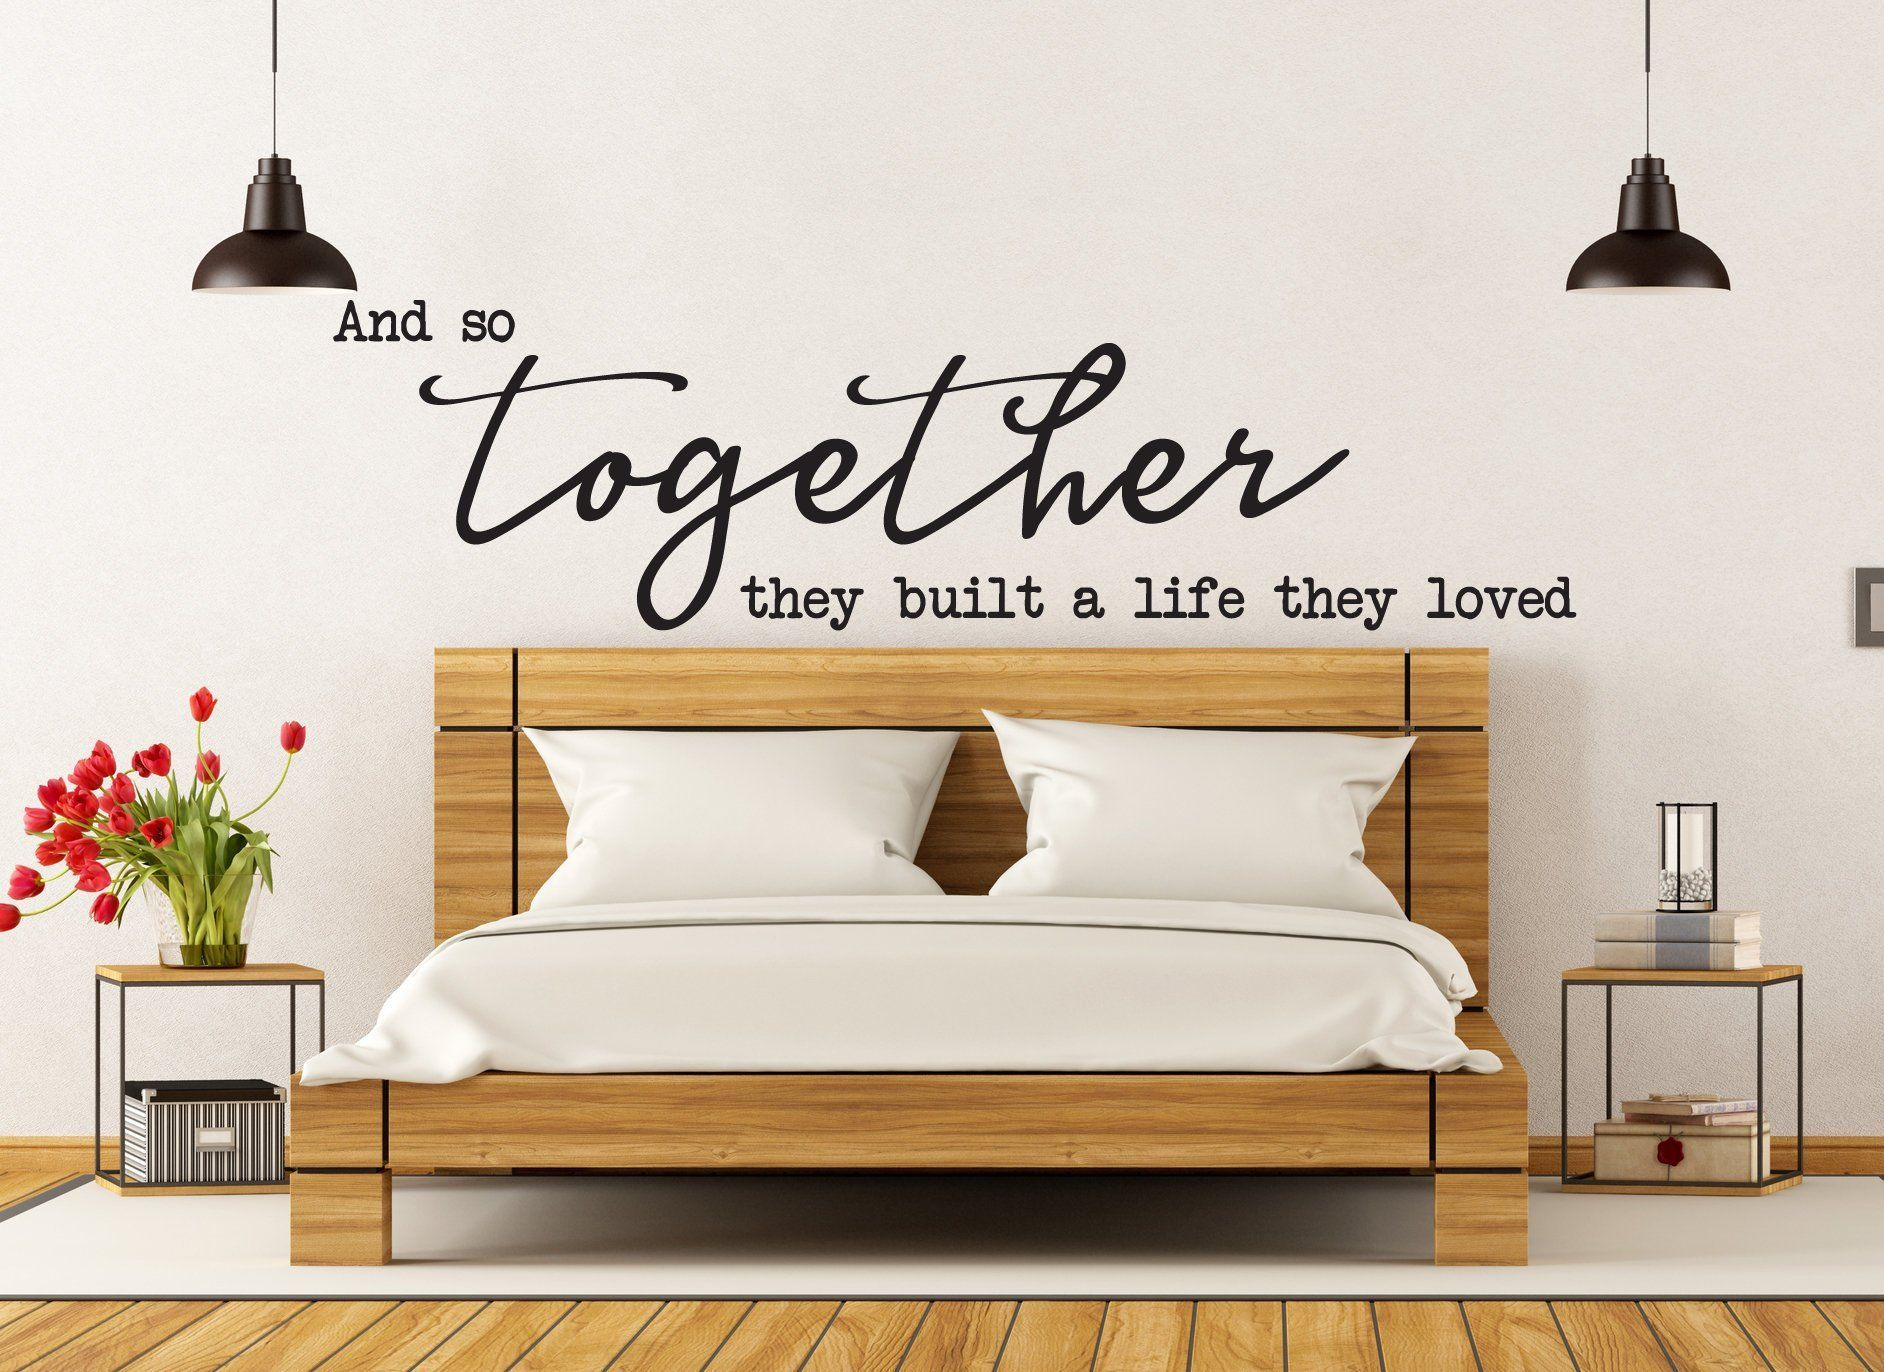 Vinyl Wall Art Decal And So Together They Built A Life Etsy Vinyl Wall Art Decals Decal Wall Art Vinyl Wall Art